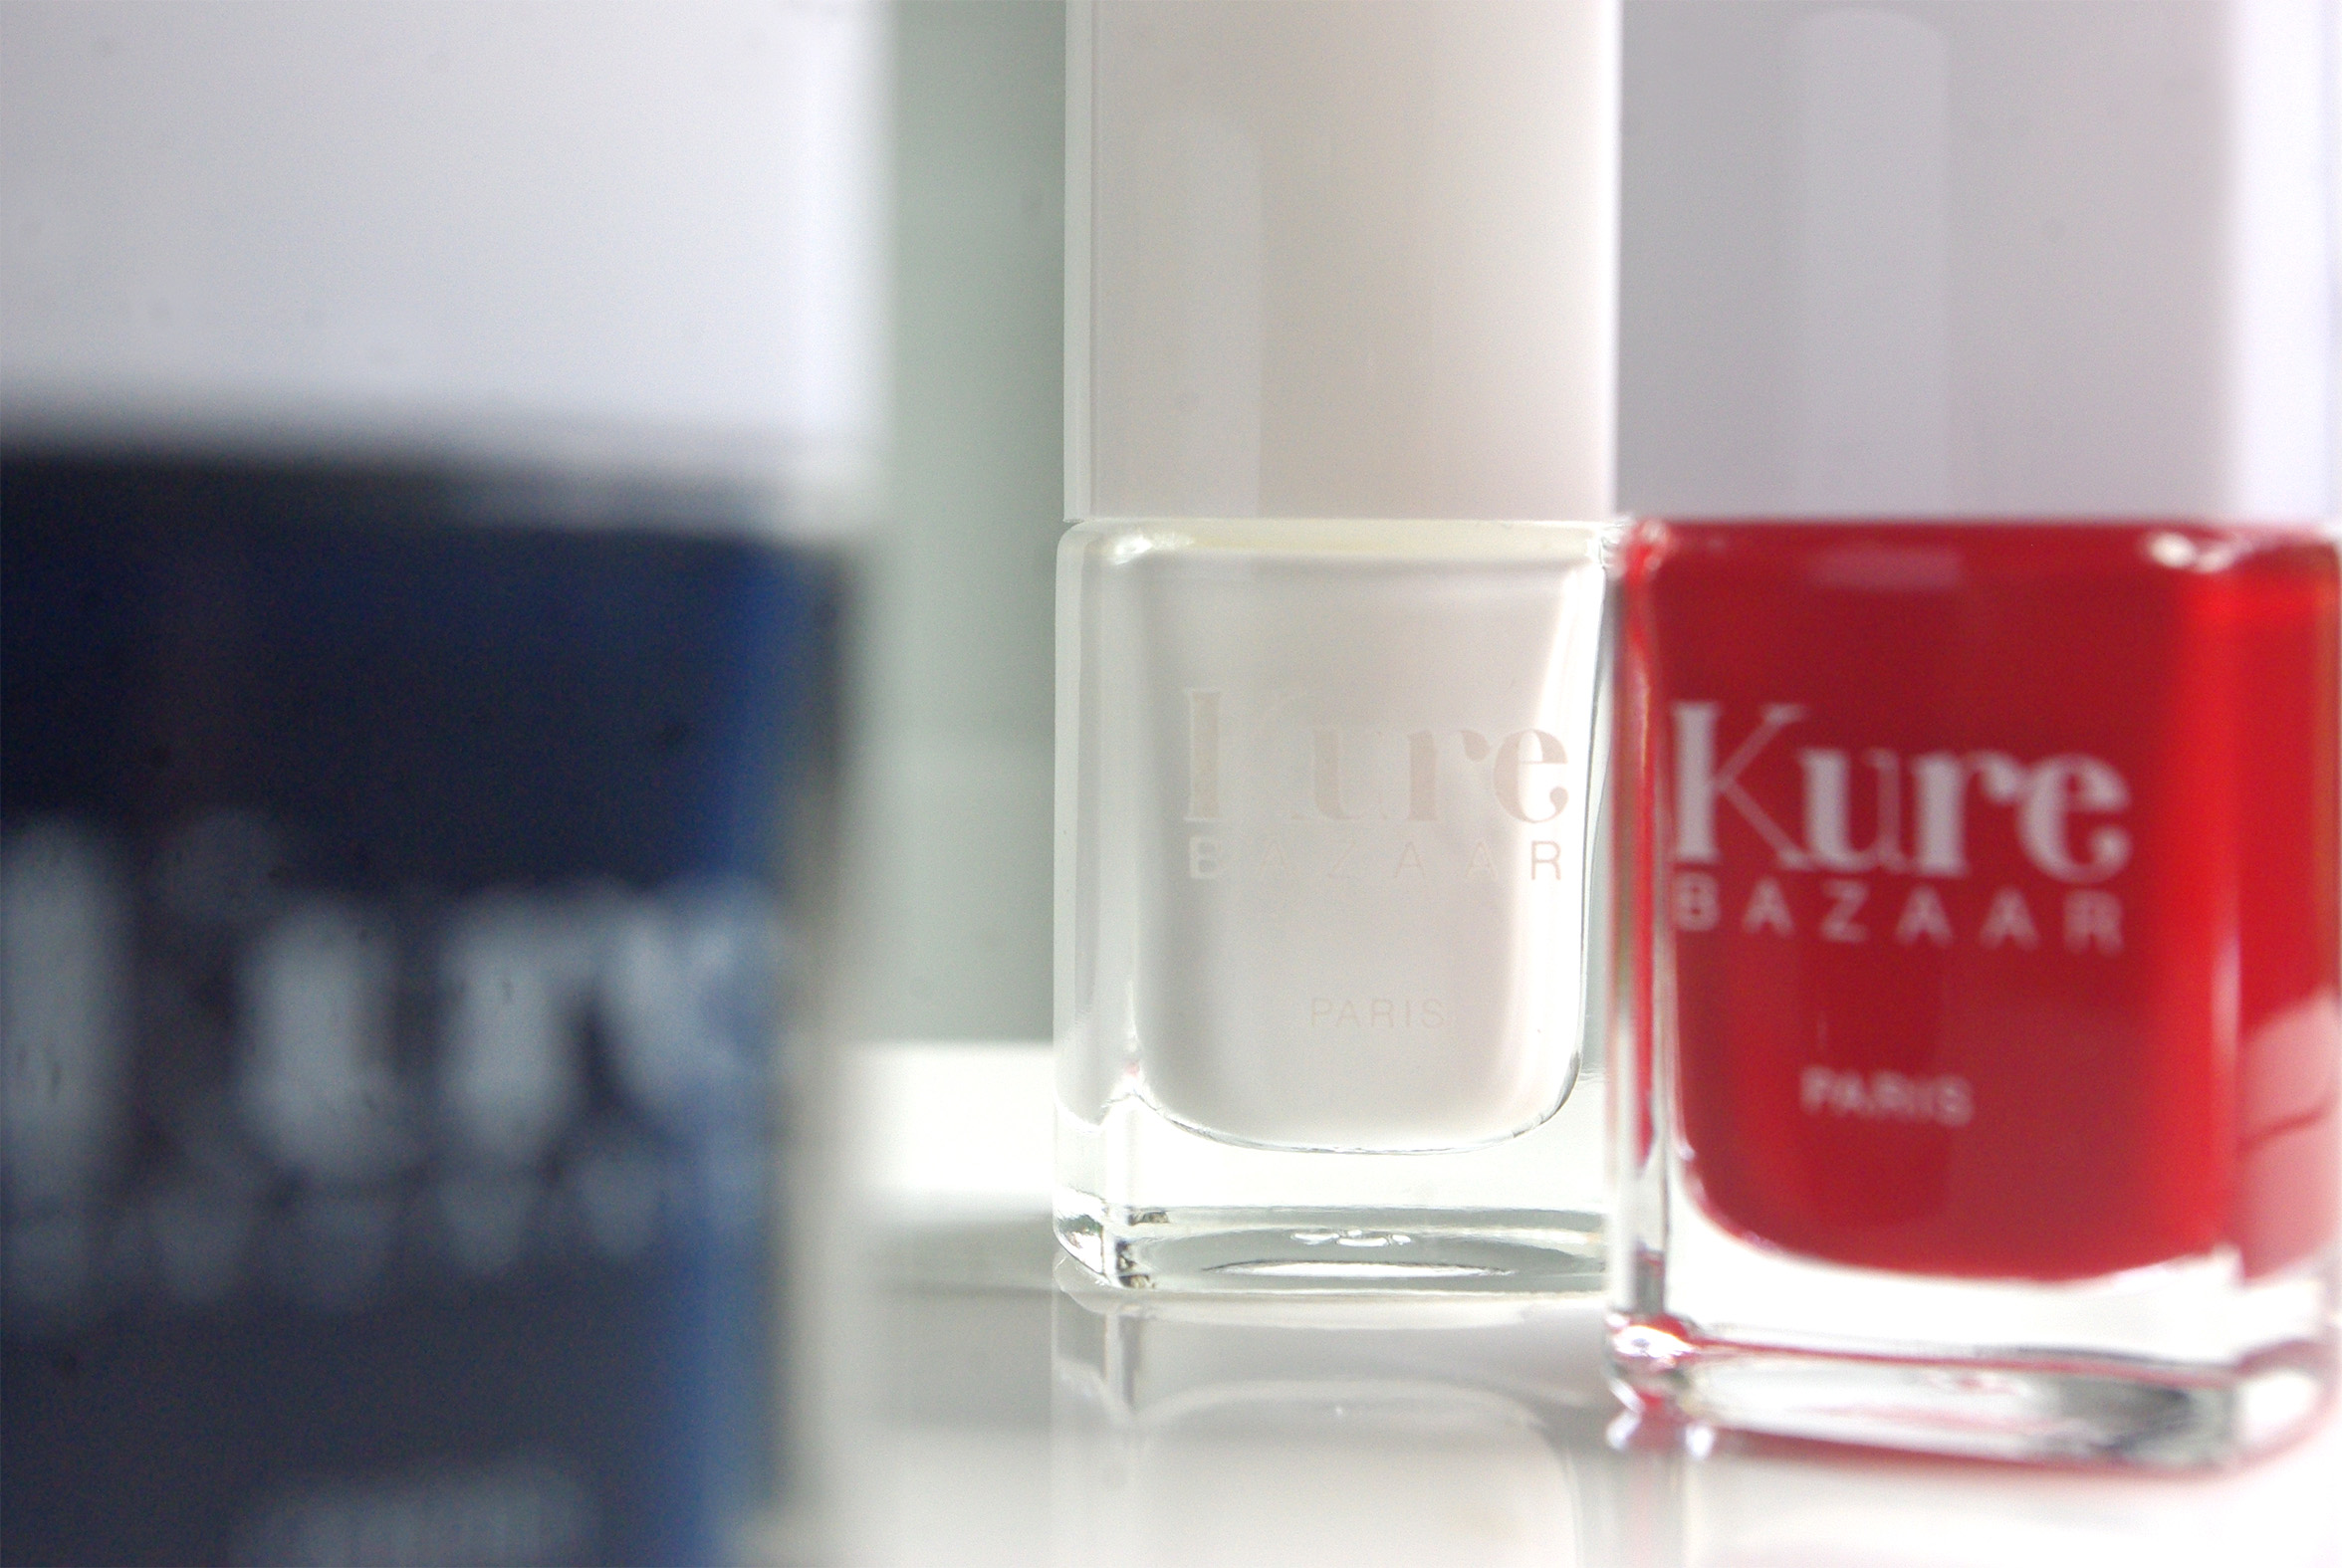 KURE BAZAAR FRENCH TOUCH